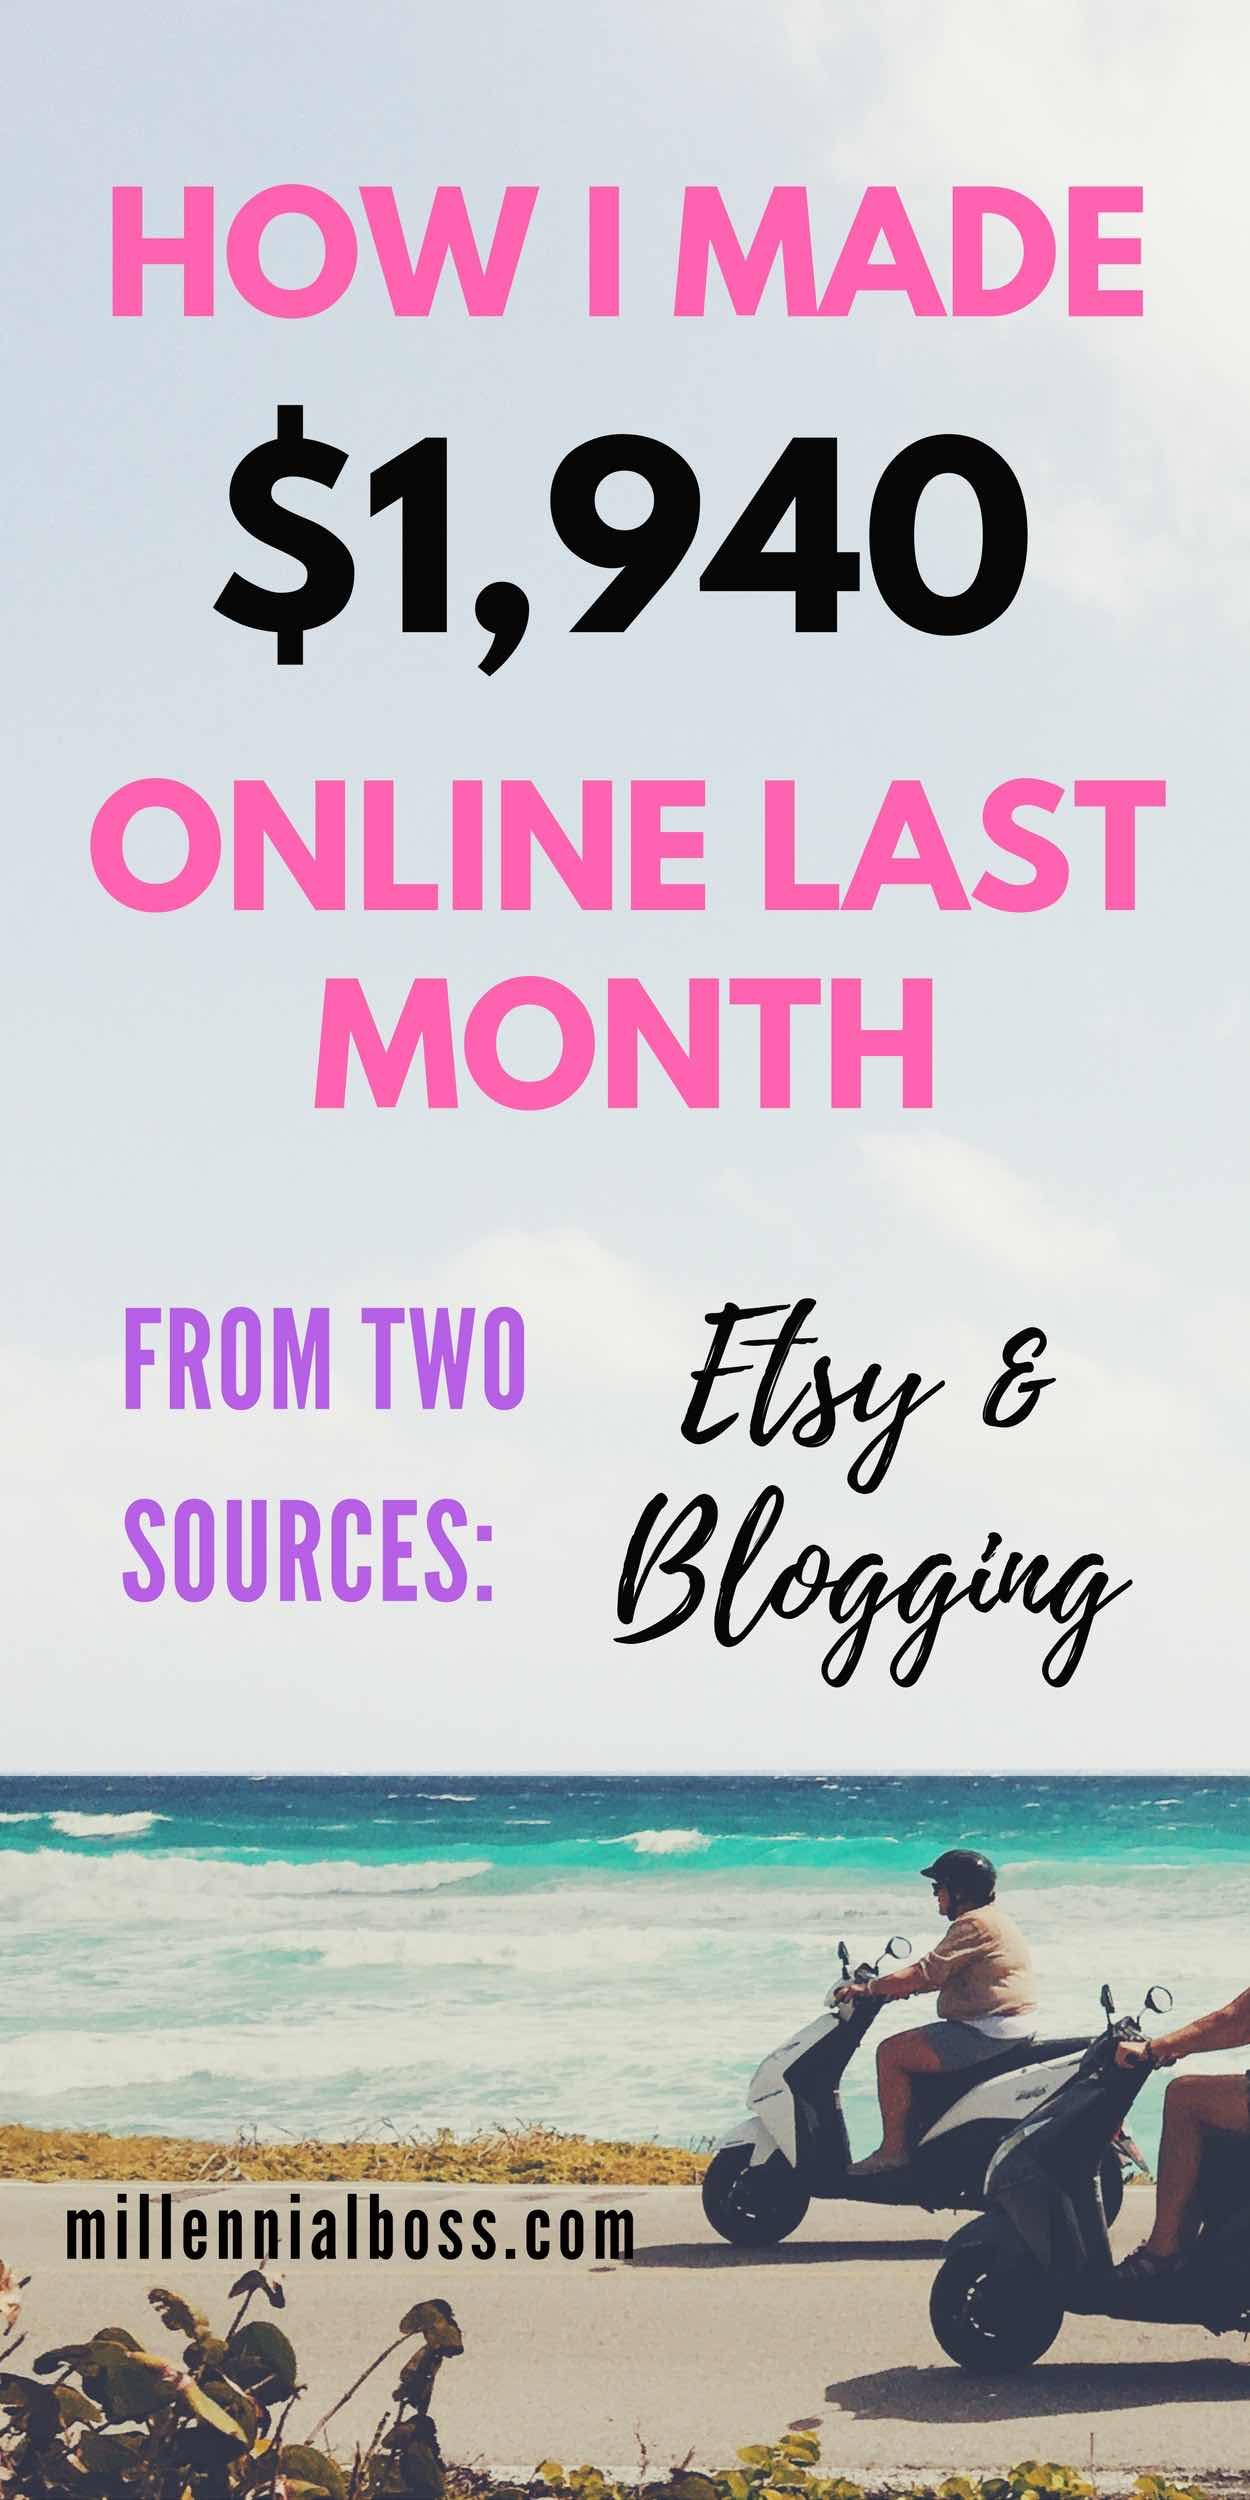 Very detailed breakdown this blogging income report - Thanks for sharing